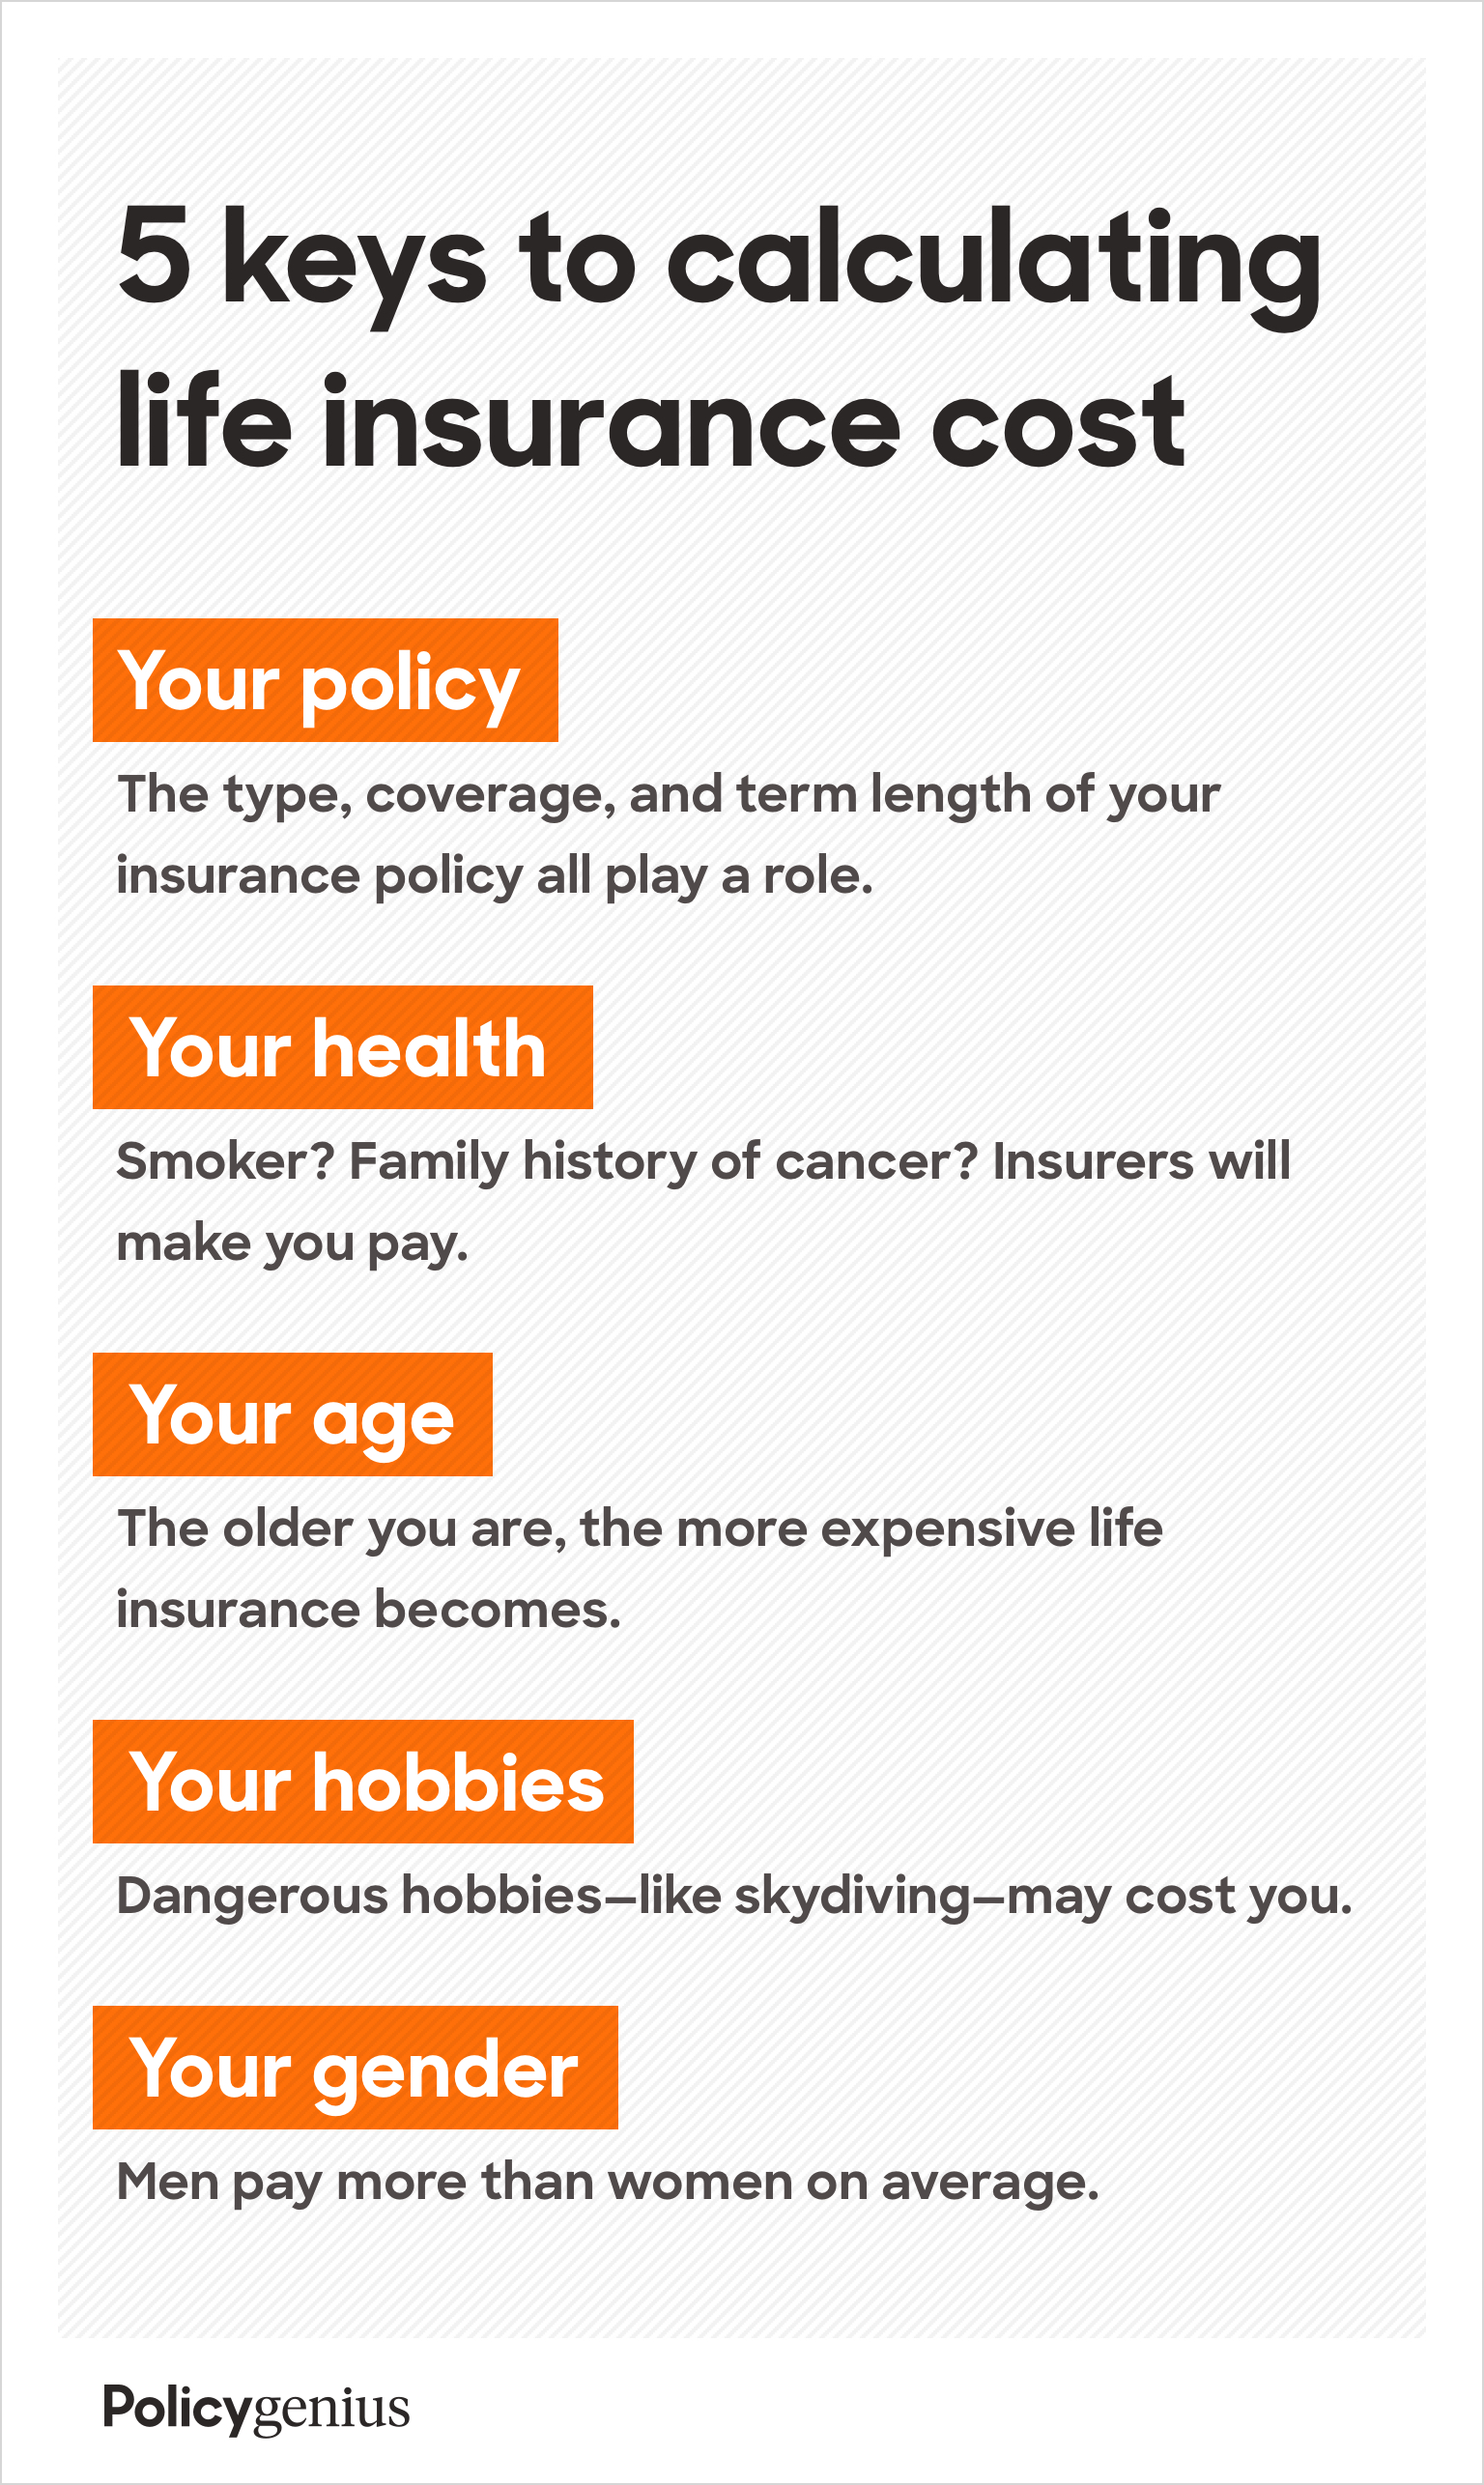 Life insurance cost if determined by five main factors: your policy type, your health, your age, your hobbies, and your gender. Learn more at Policygenius.